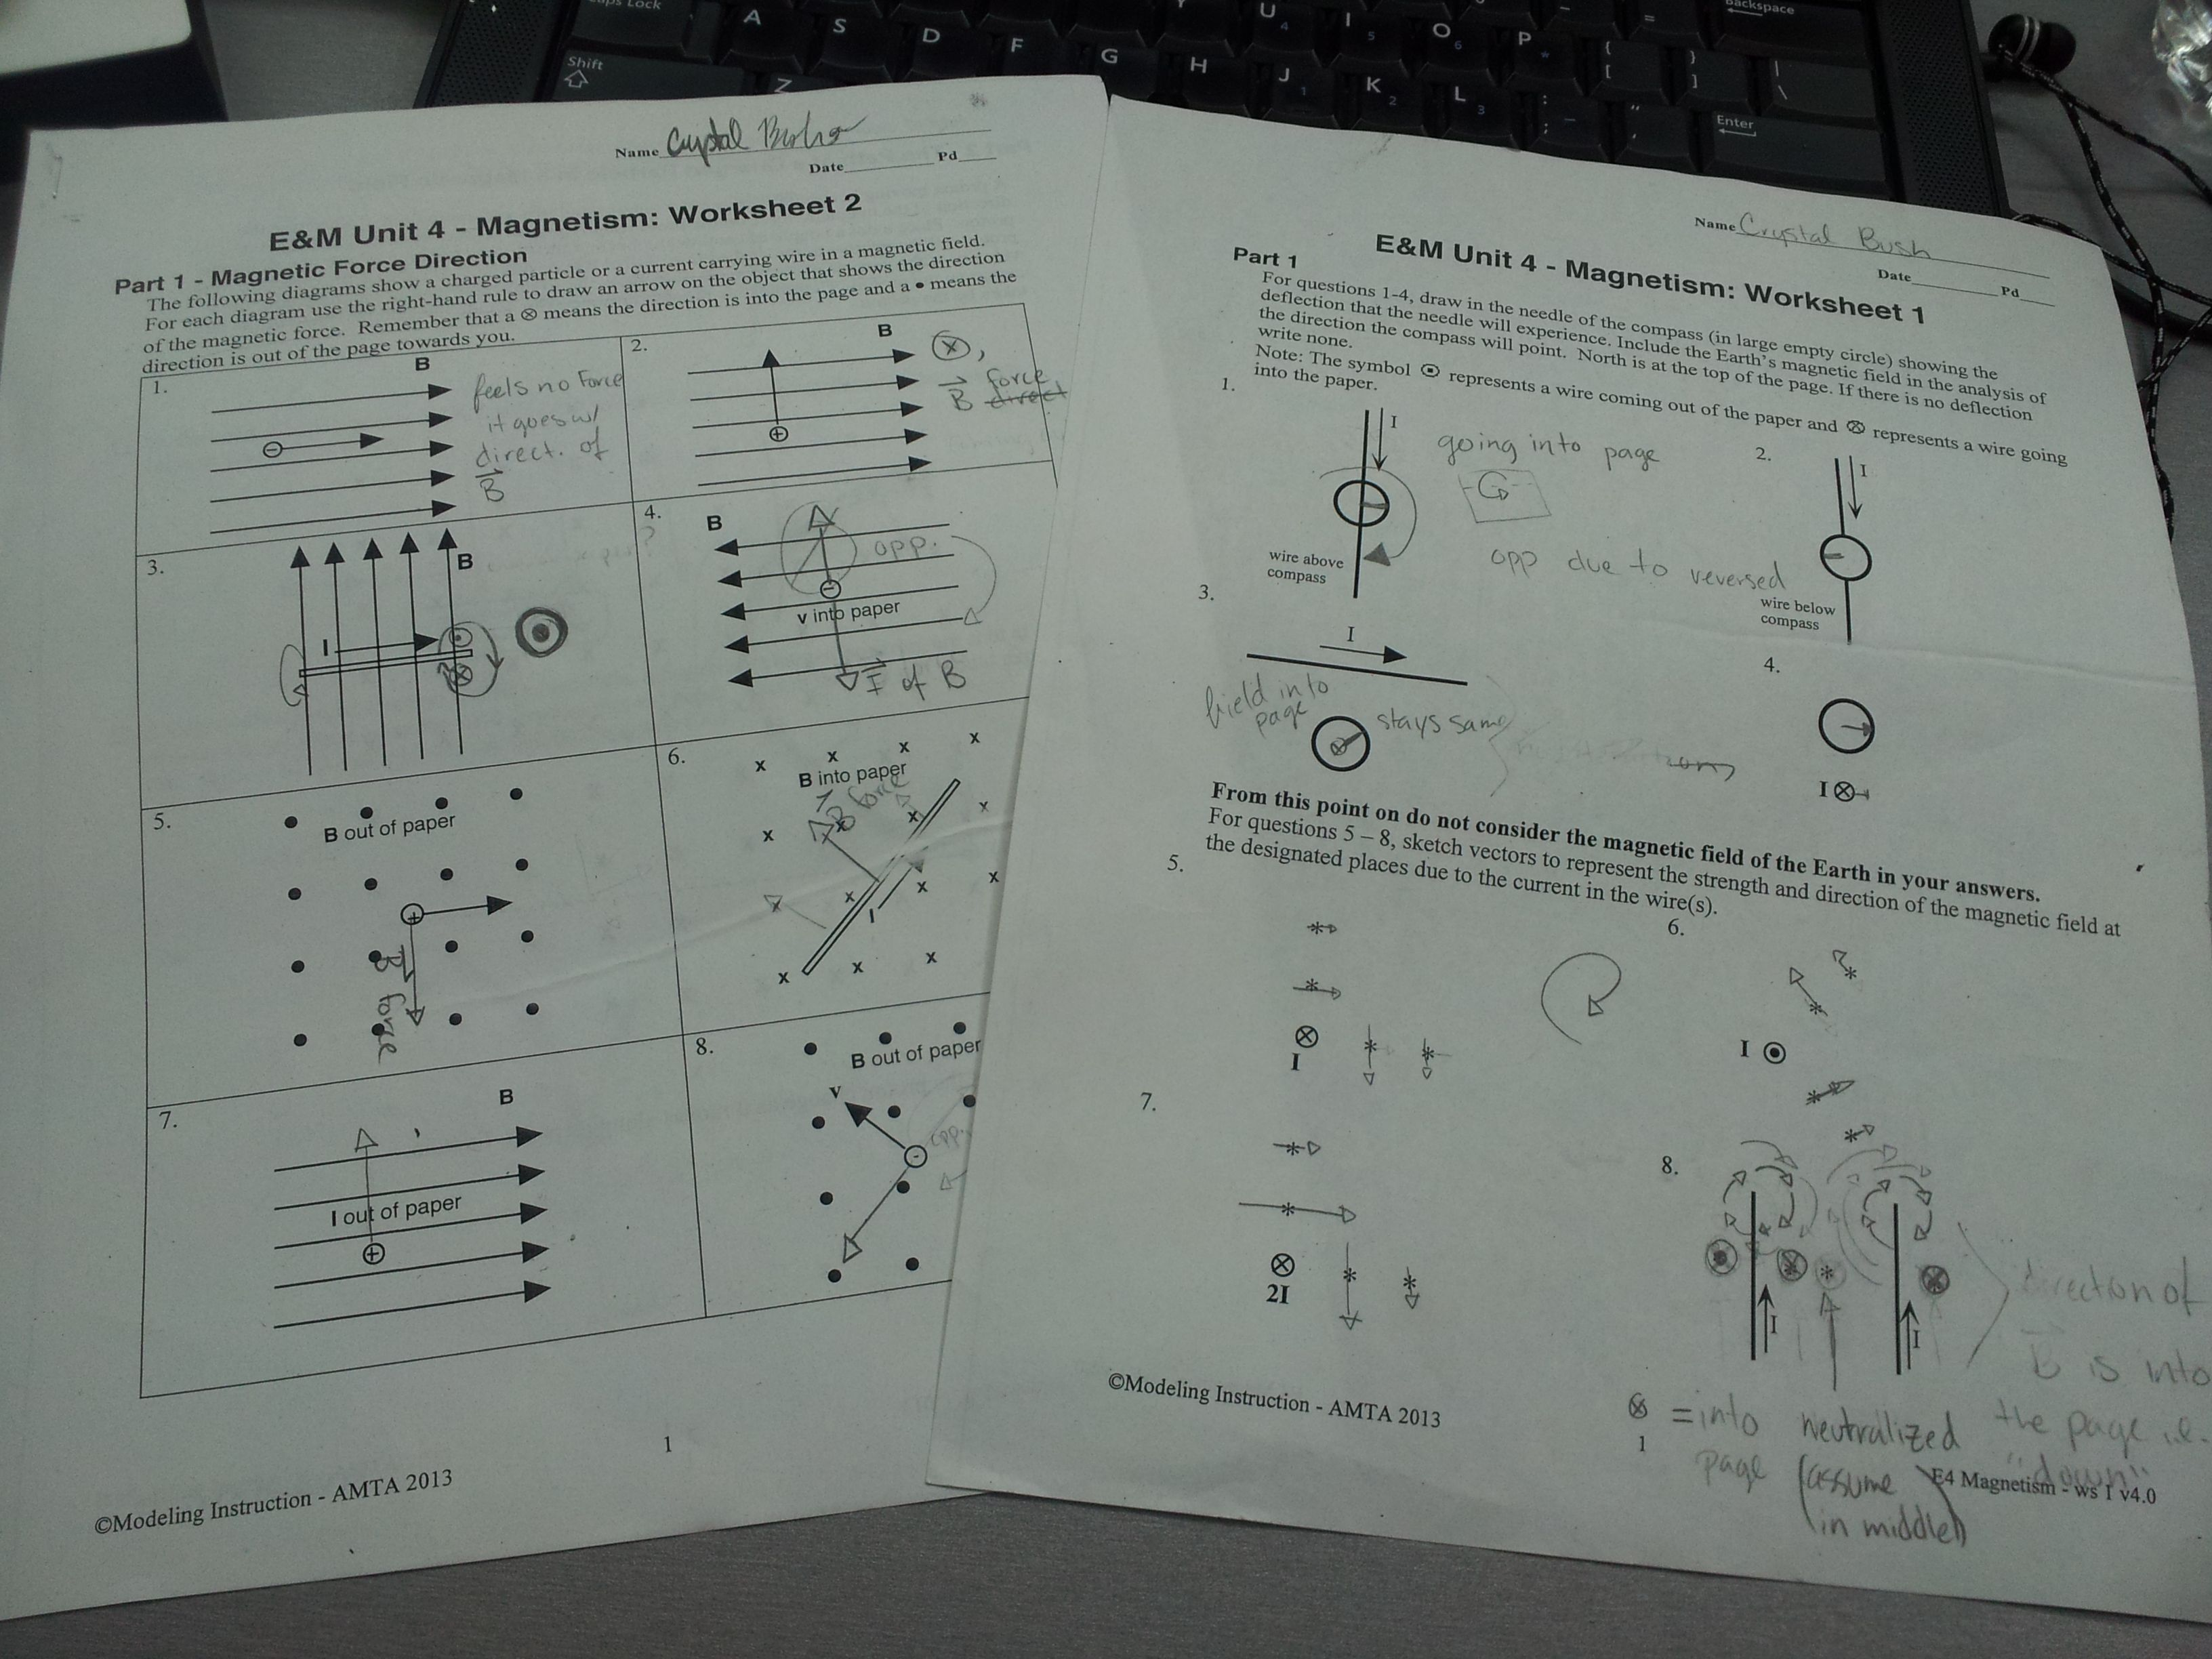 In Class Of Tuesday We Finishedstarted Em Worksheets 1 And 2 For